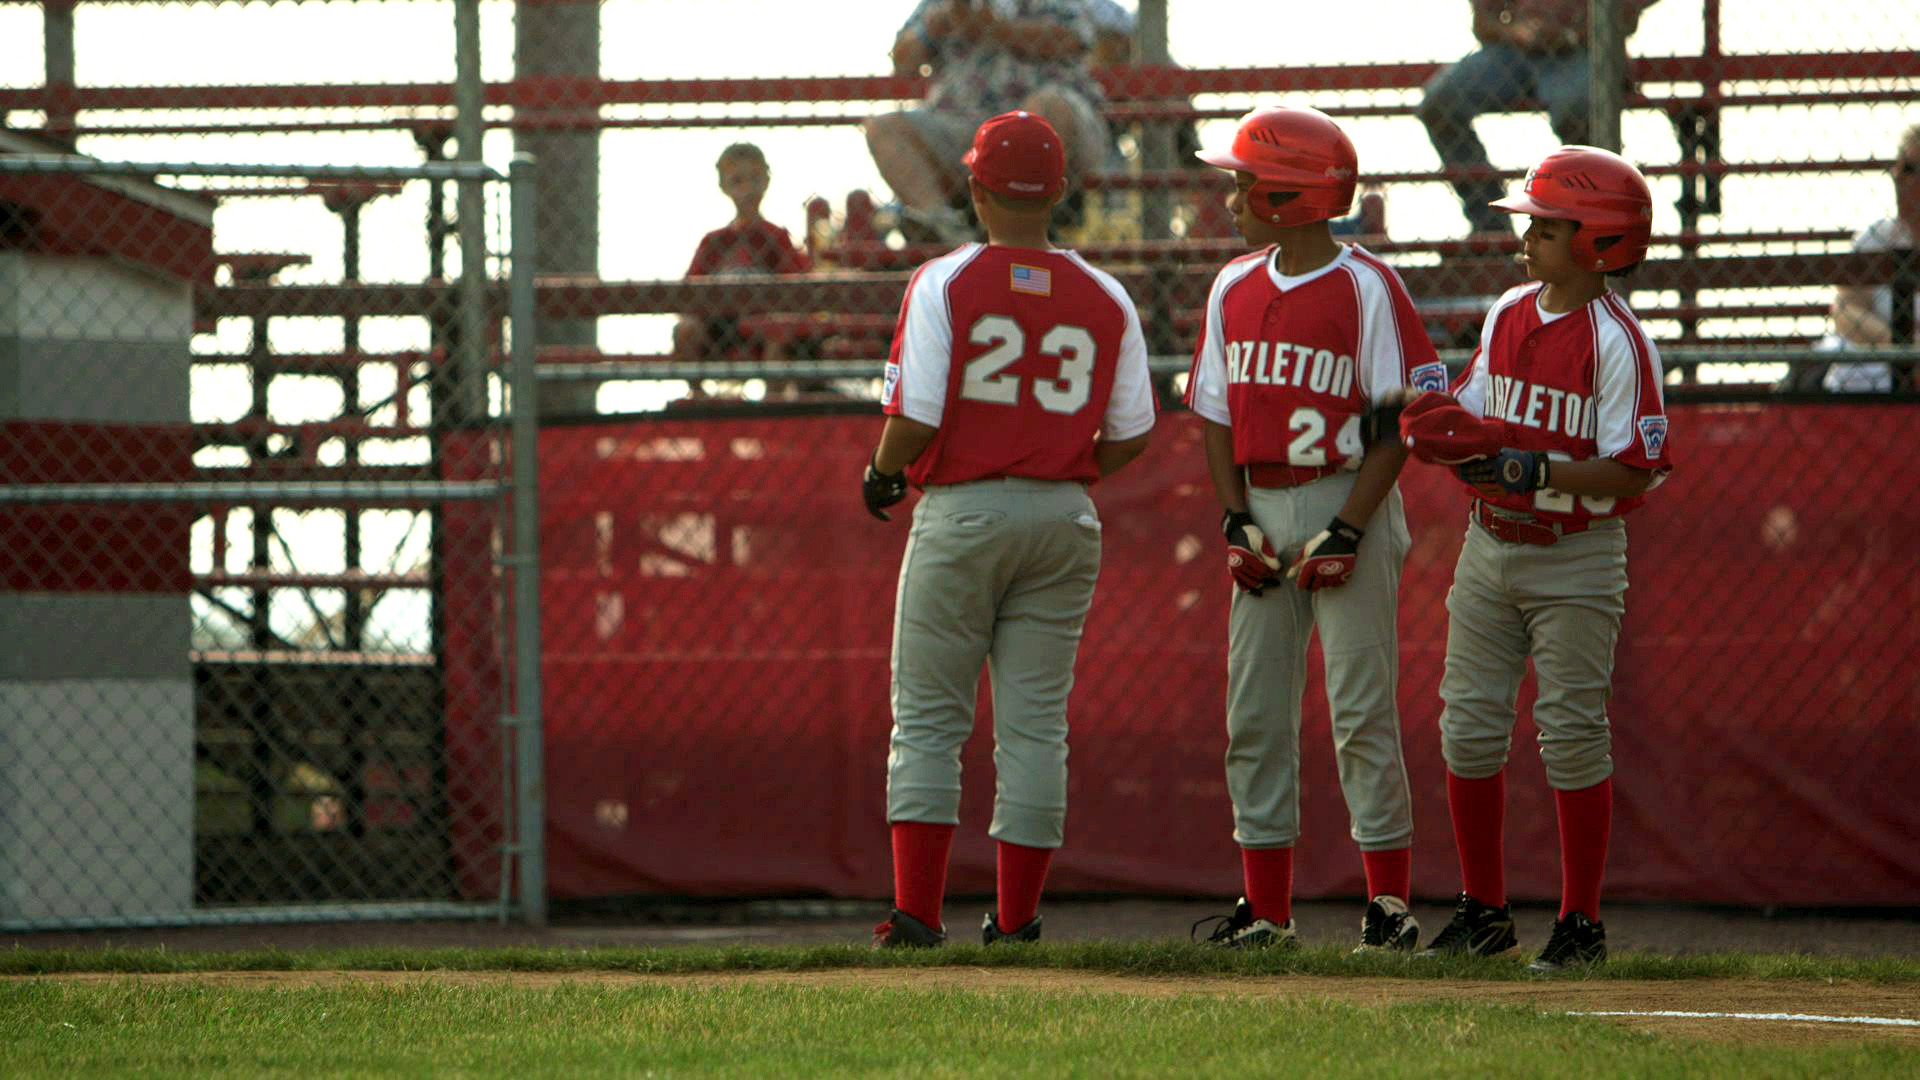 Hazleton_Baseball_Team_Lining_Up_AmericanCreed_72dpi.jpg